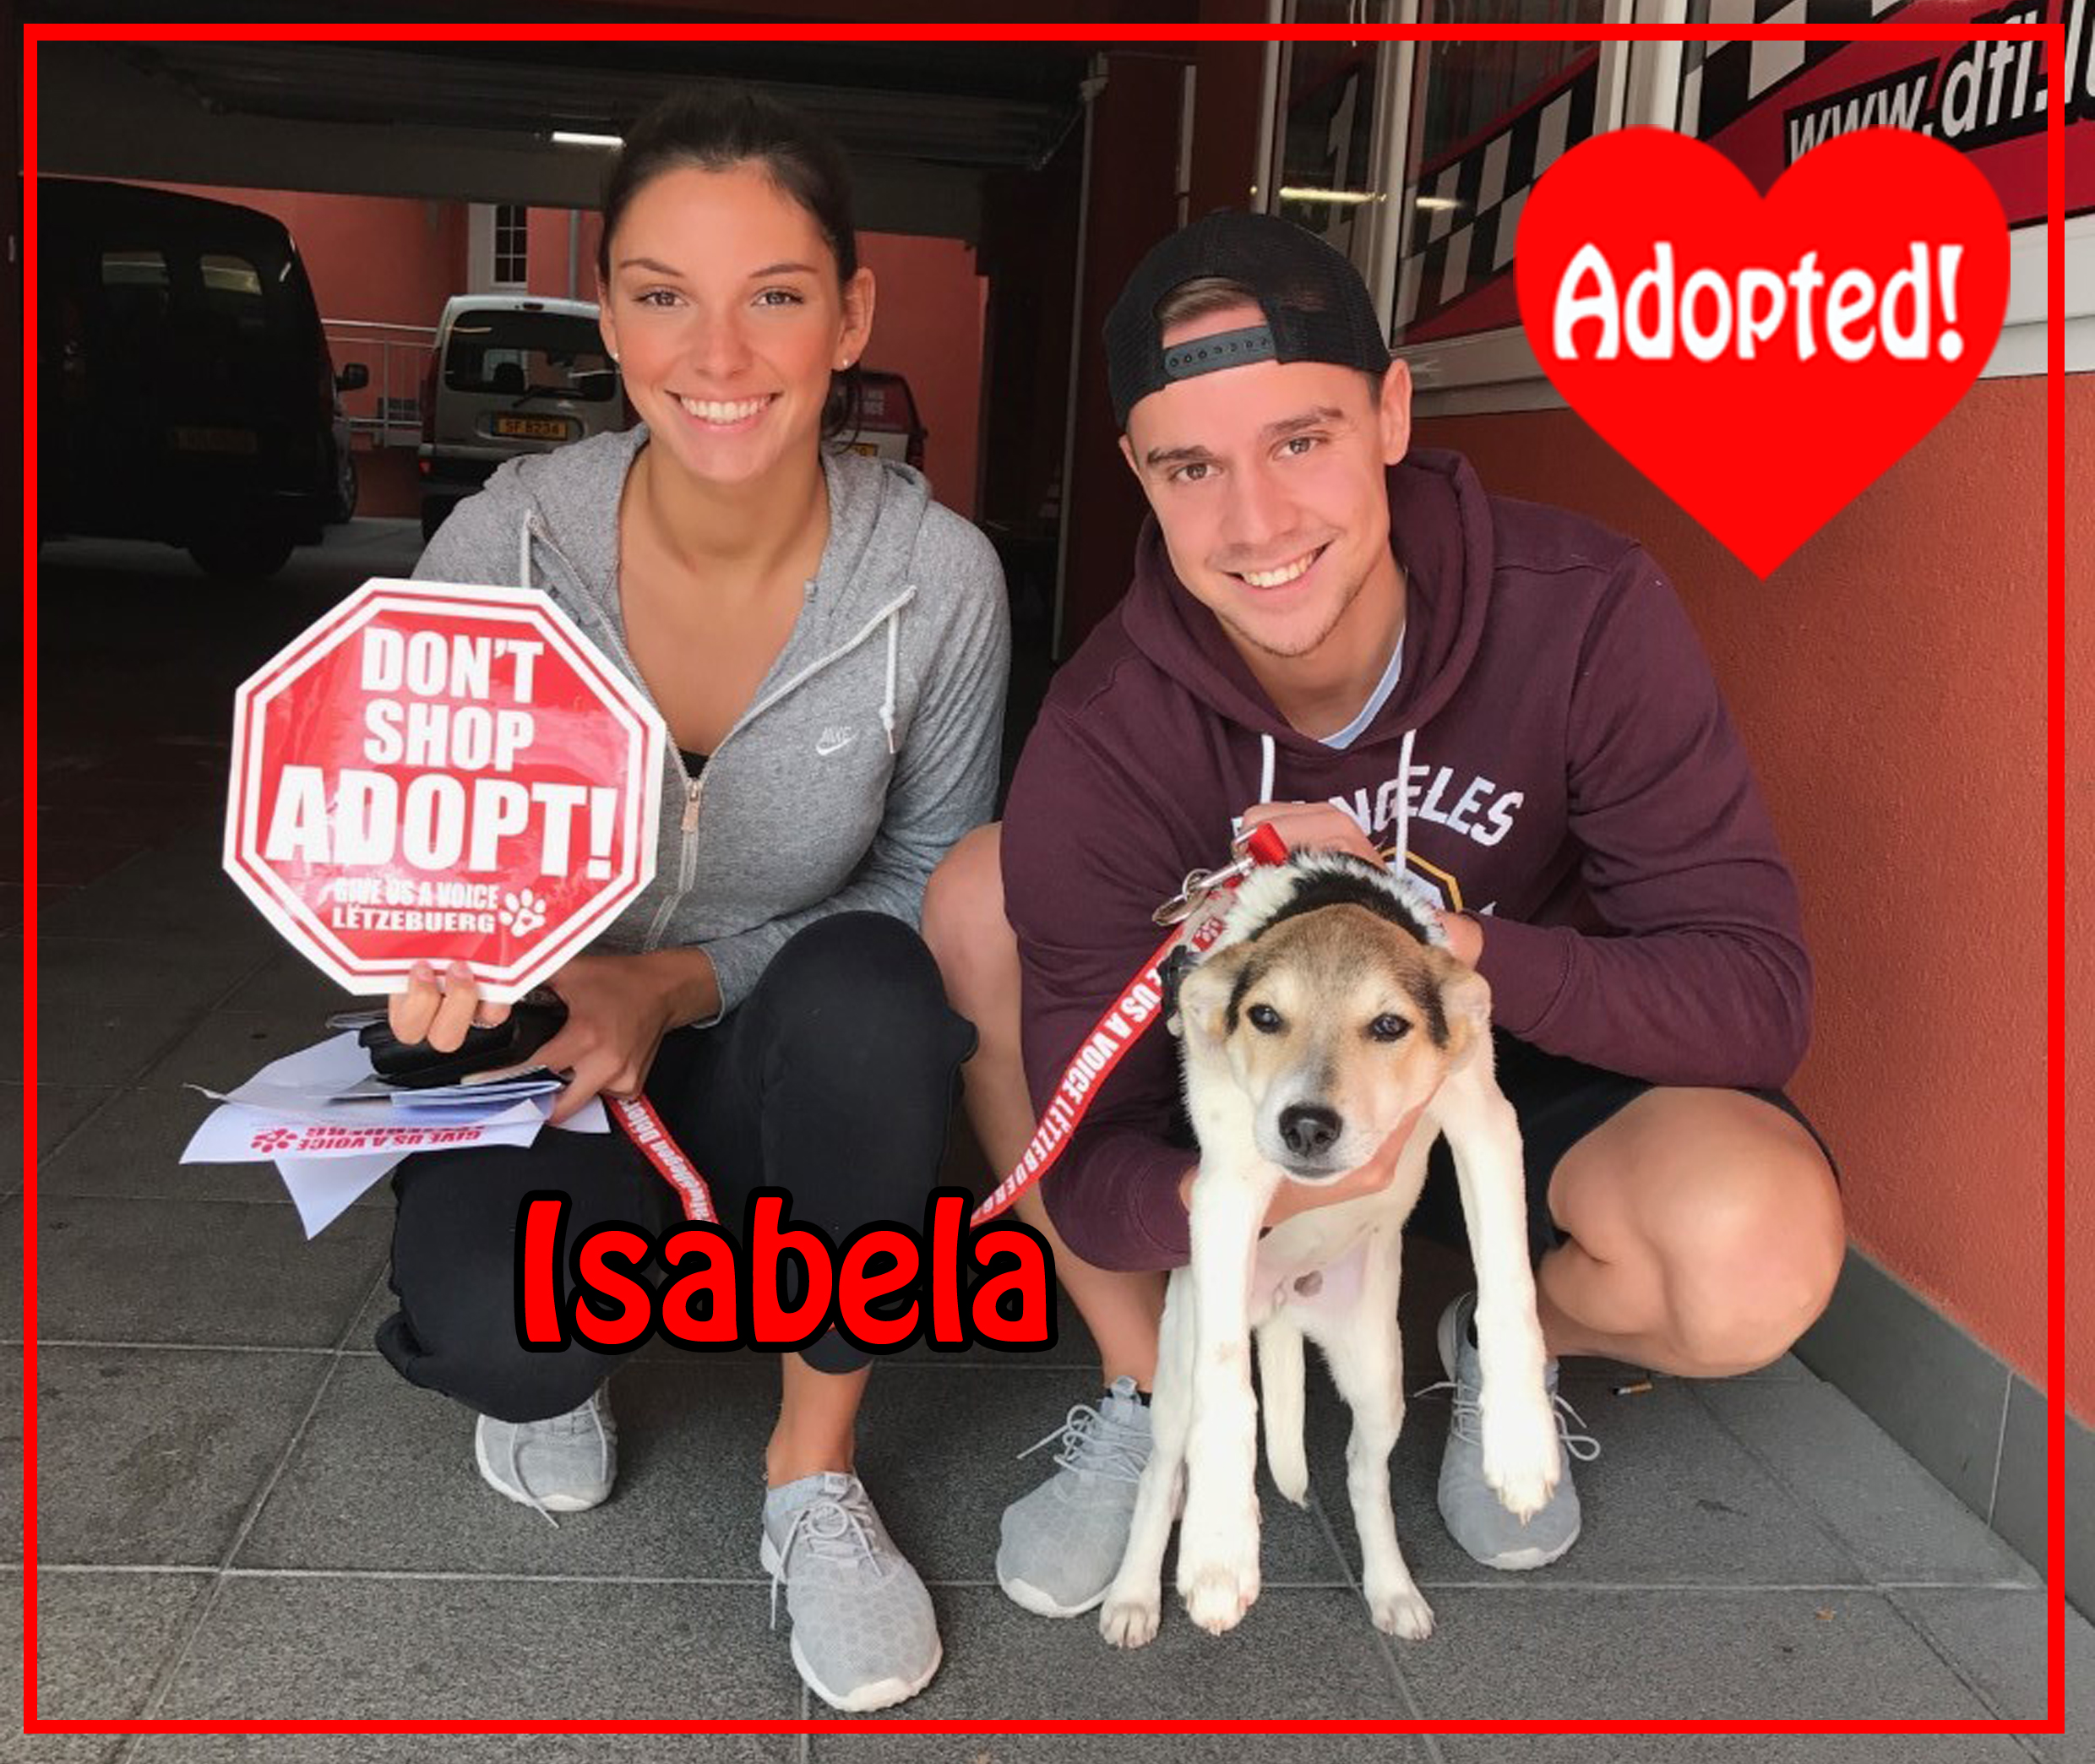 isabela-adopted-copy